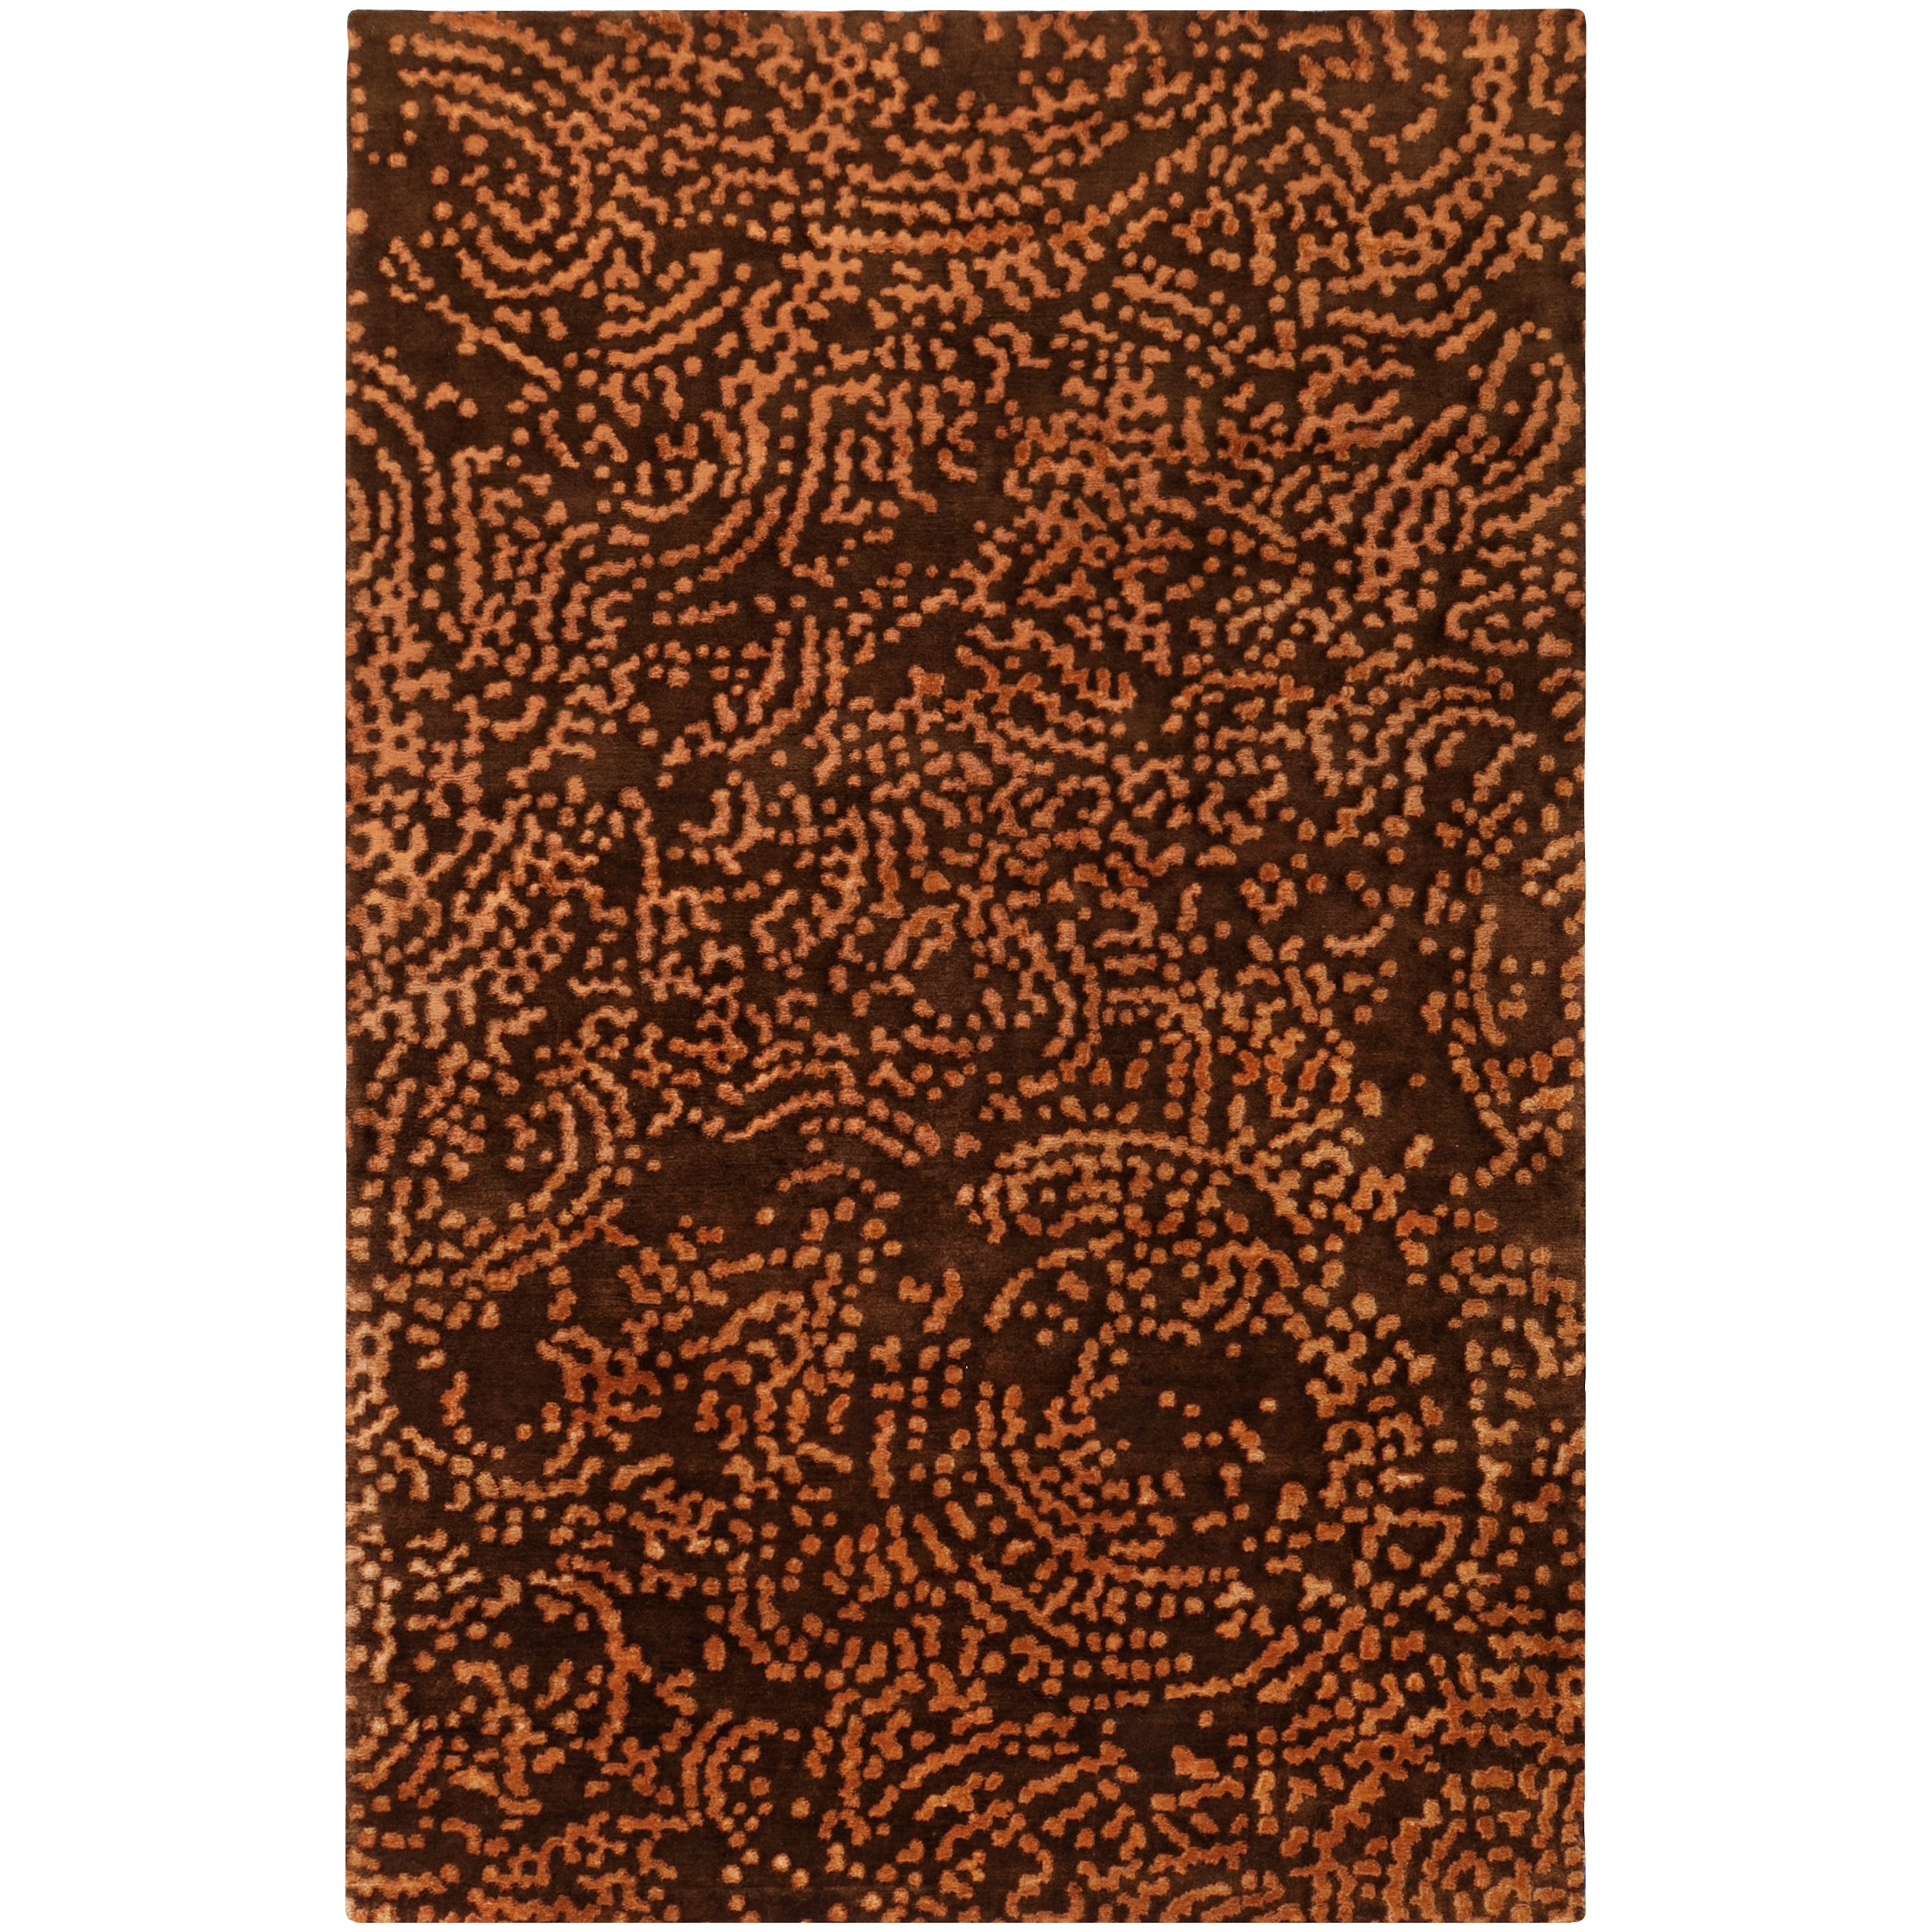 Hand-knotted Contemporary Brown/Tan Kipengre Semi-Worsted New Zealand Wool Abstract Rug (